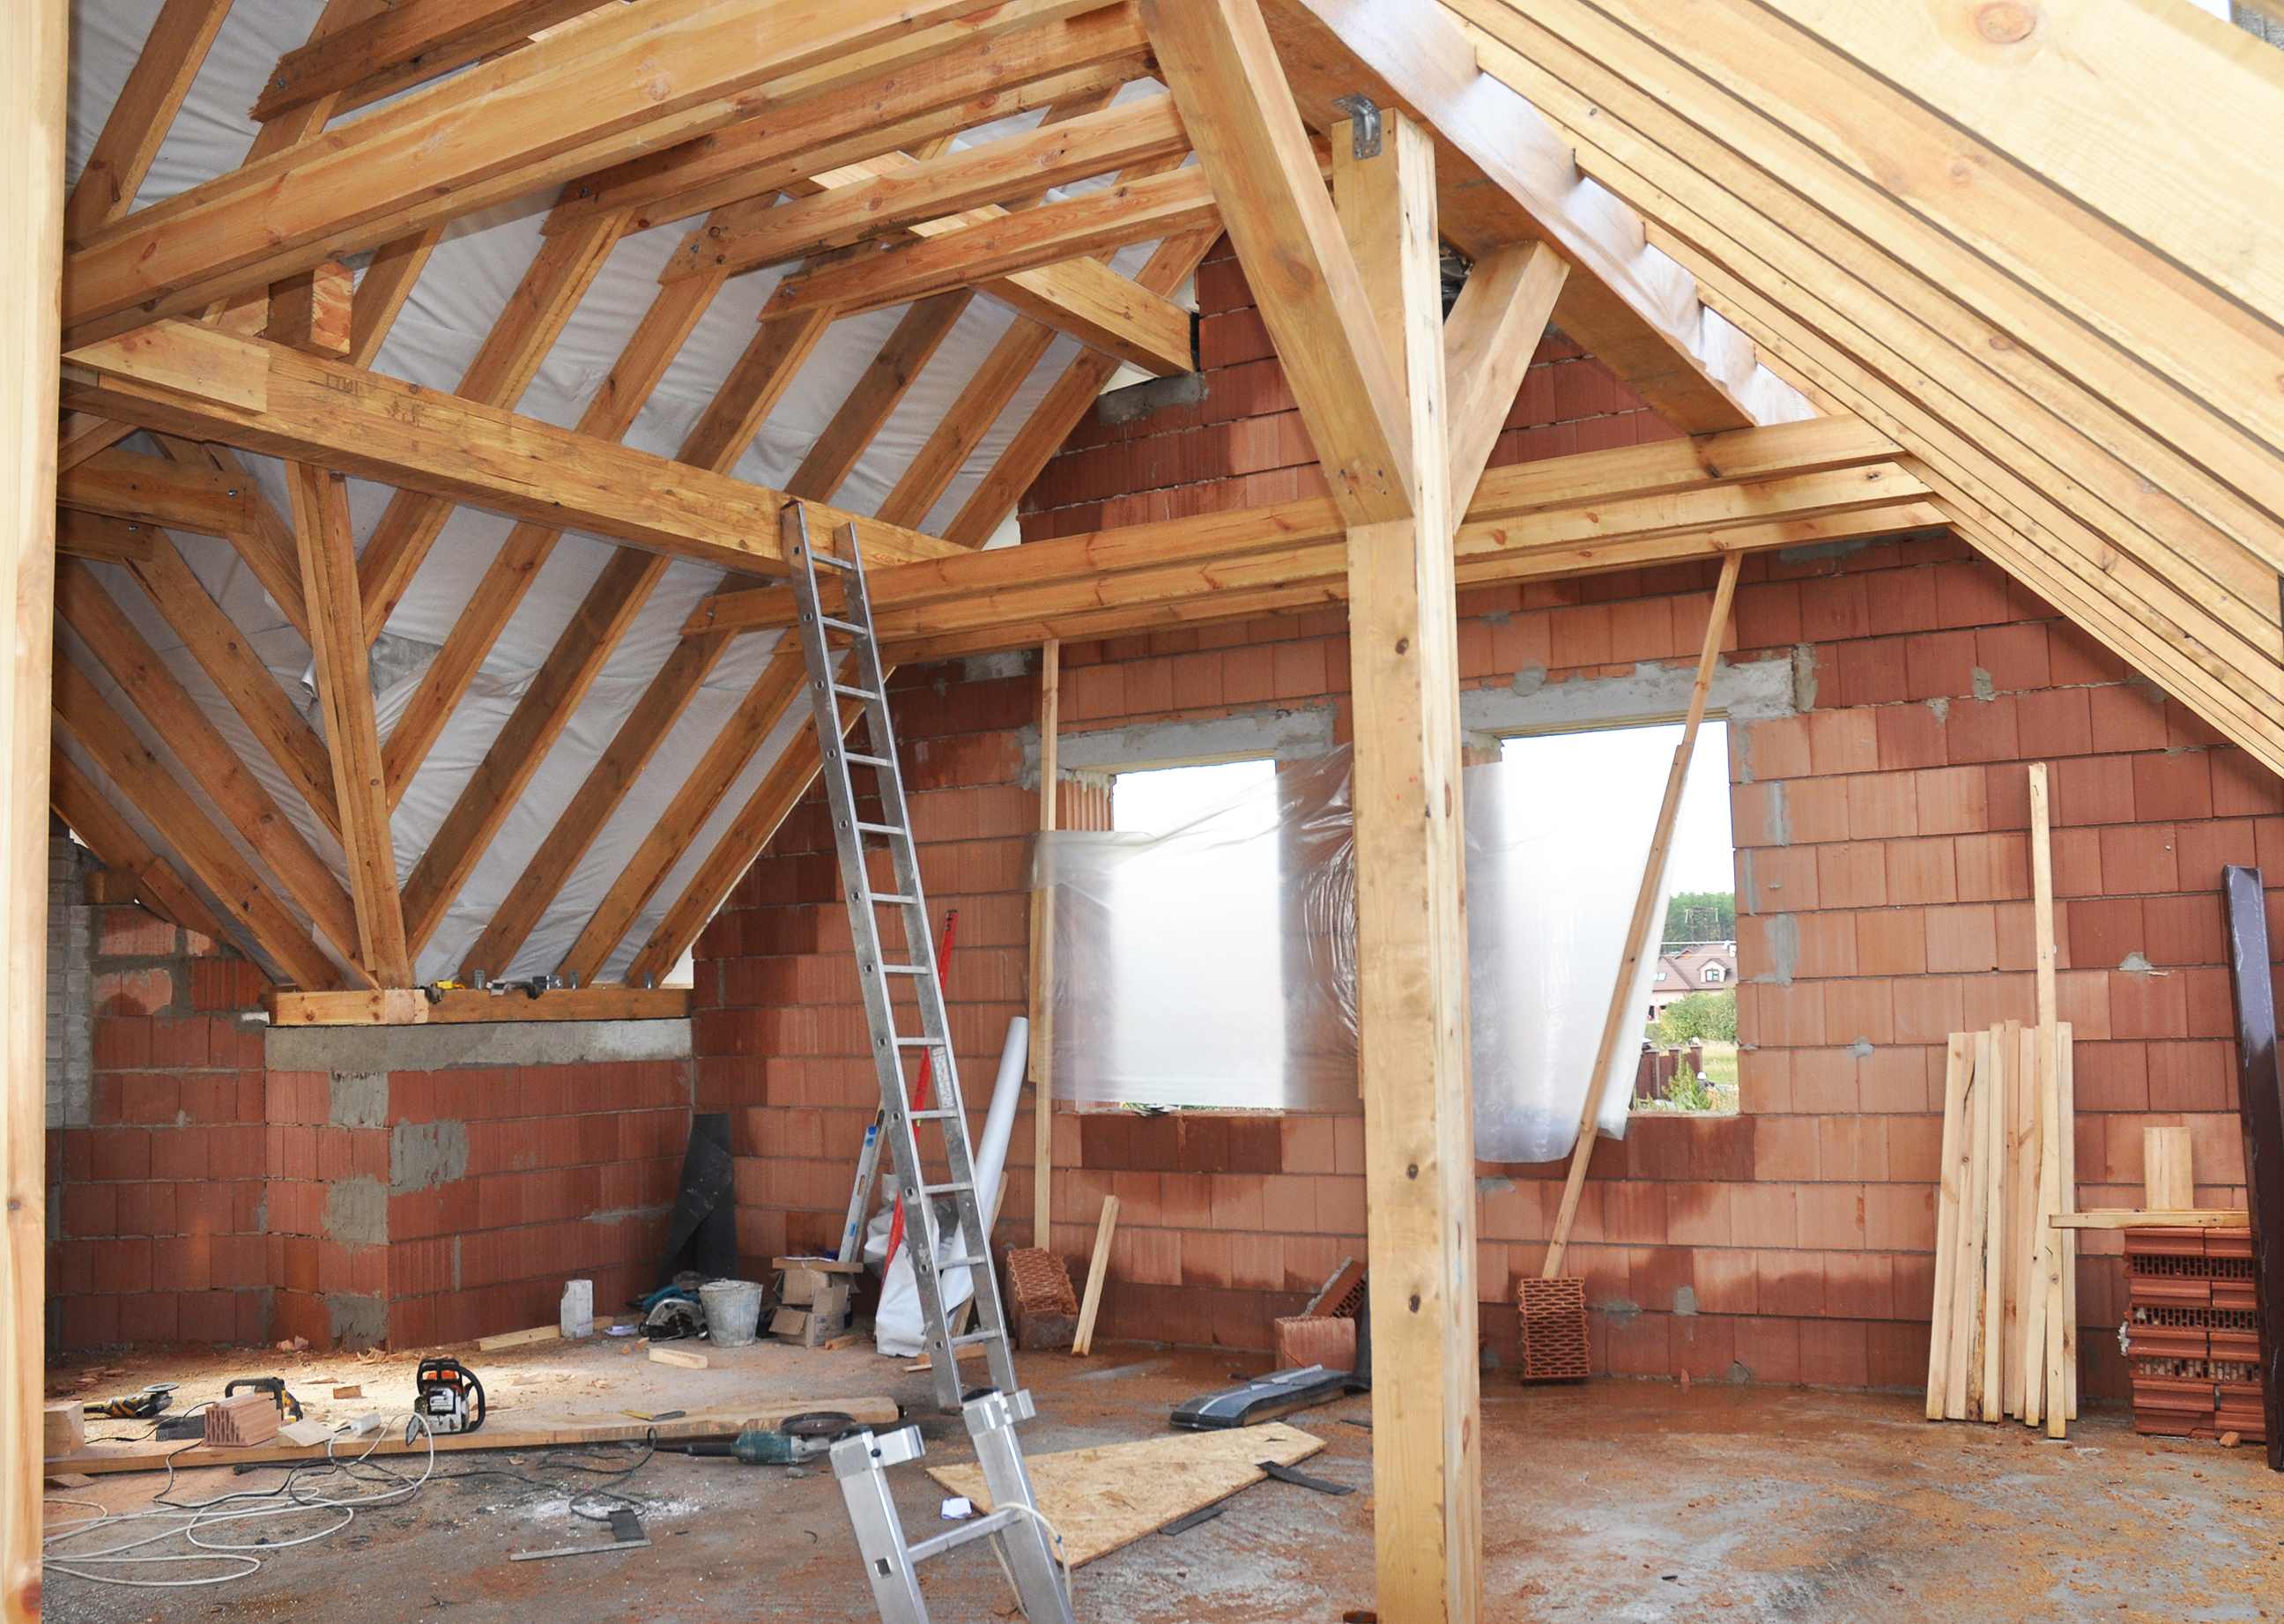 Building Attic Interior Wooden Roof Frame House Construction Cdcli